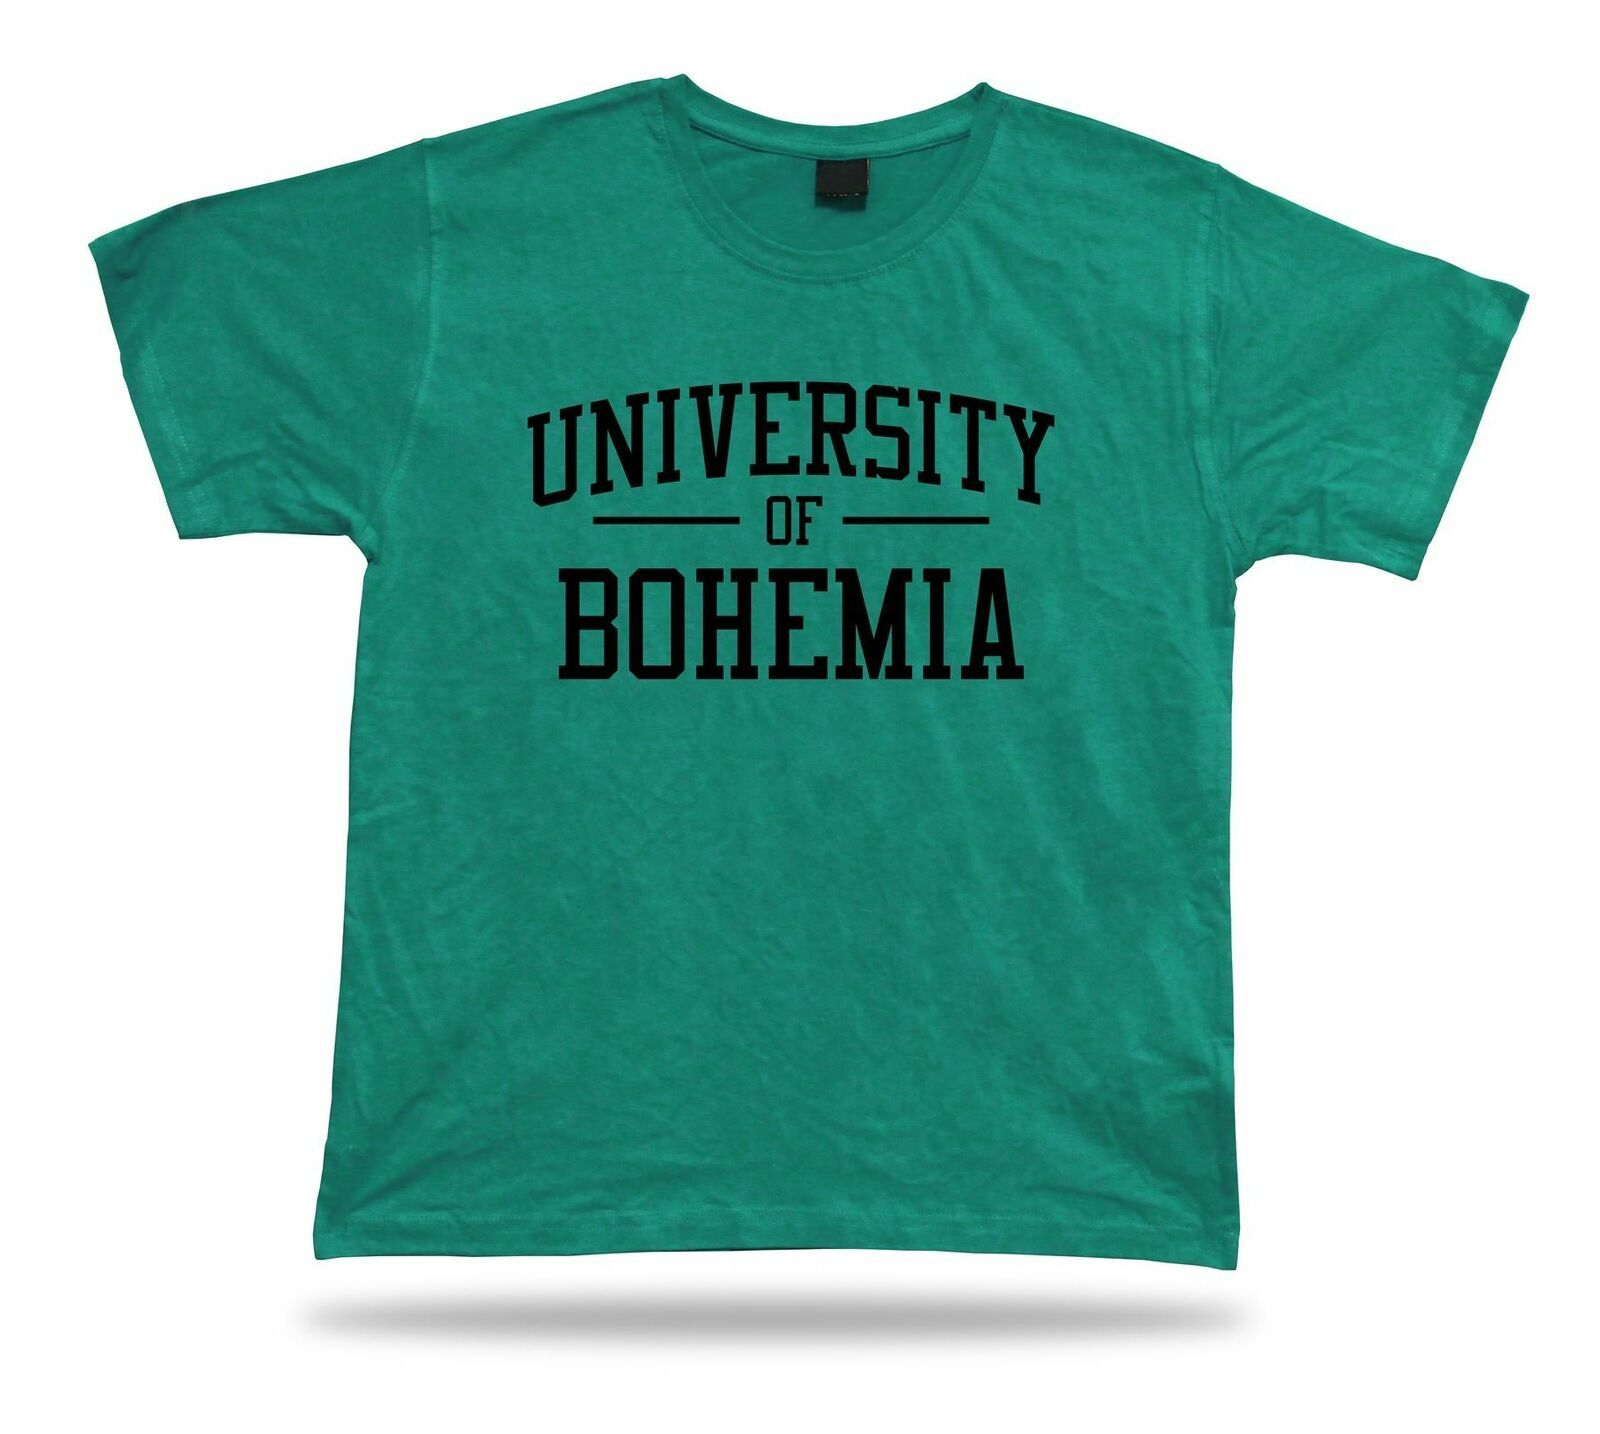 Primary image for UNIVERSITY OF BOHEMIA funny T shirt Awesome Idea humor joke life apparel tee